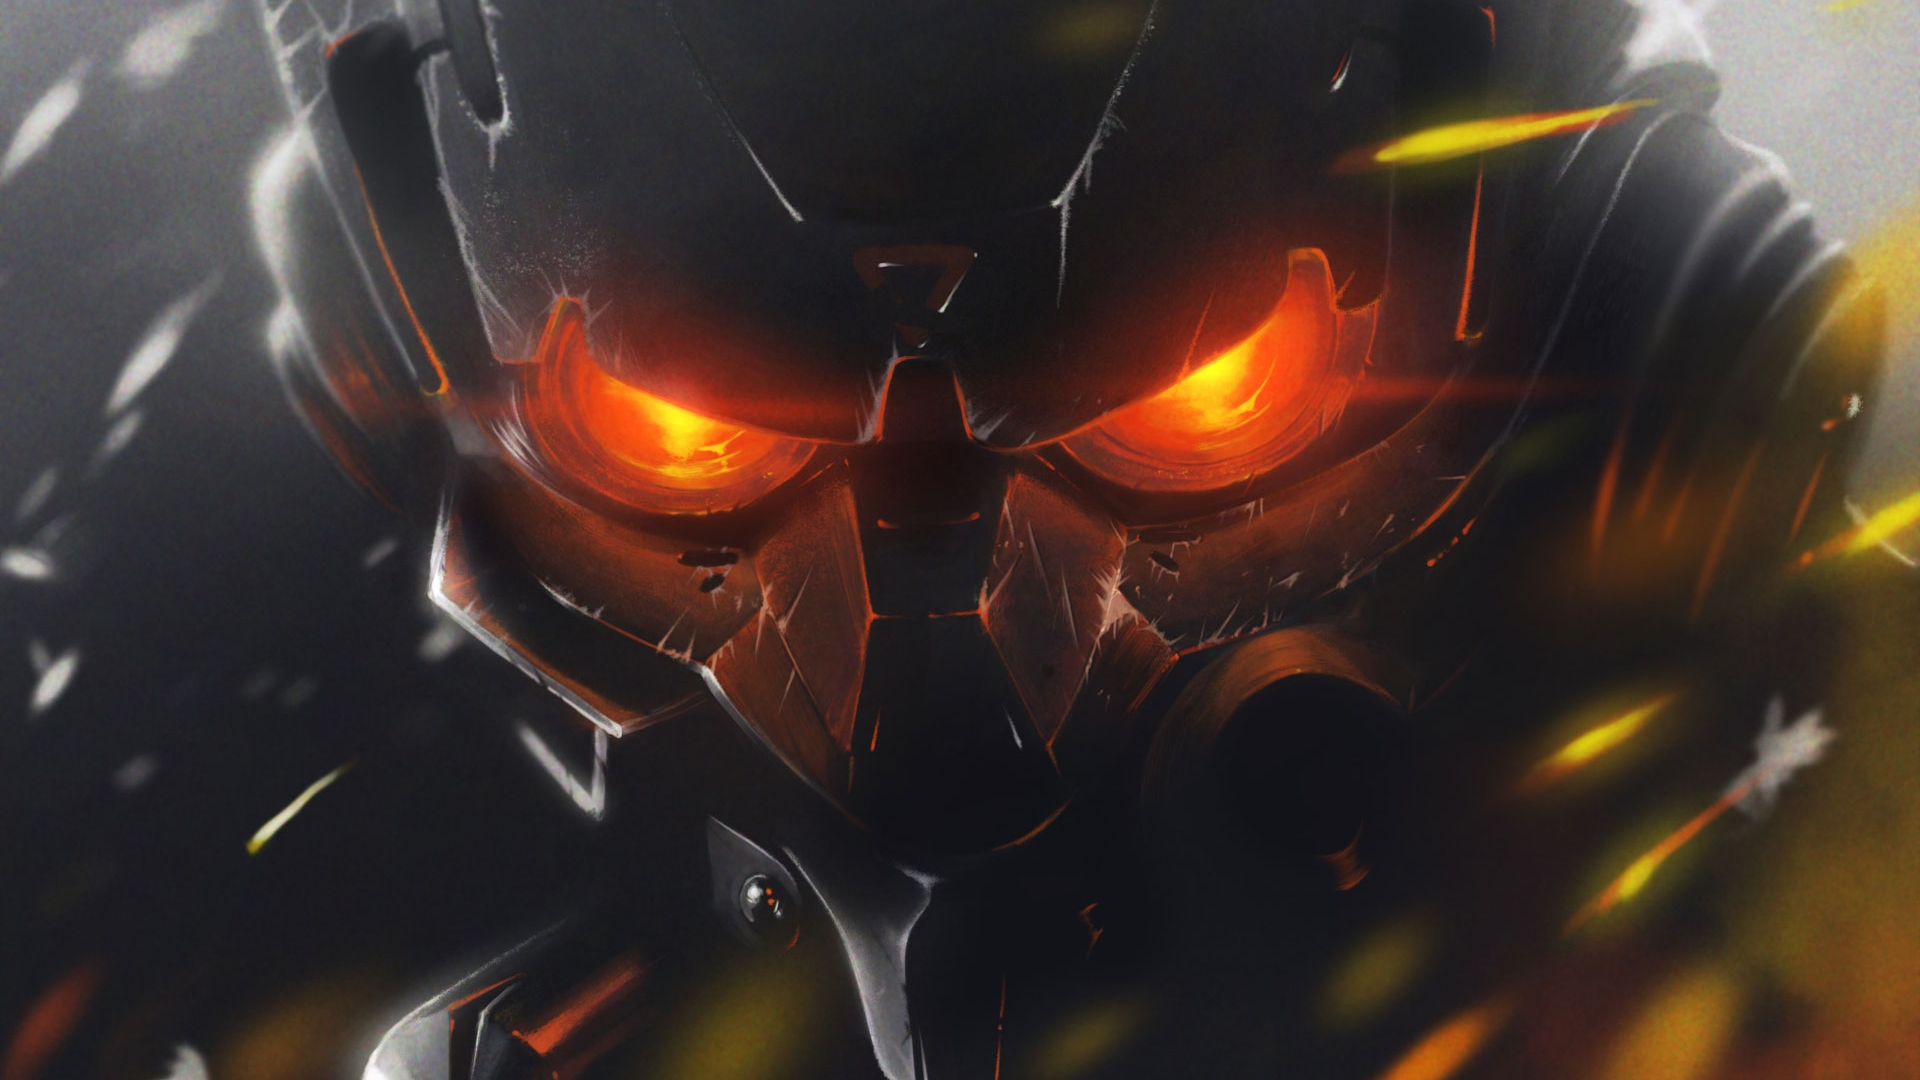 awesome killzone wallpaper 22662